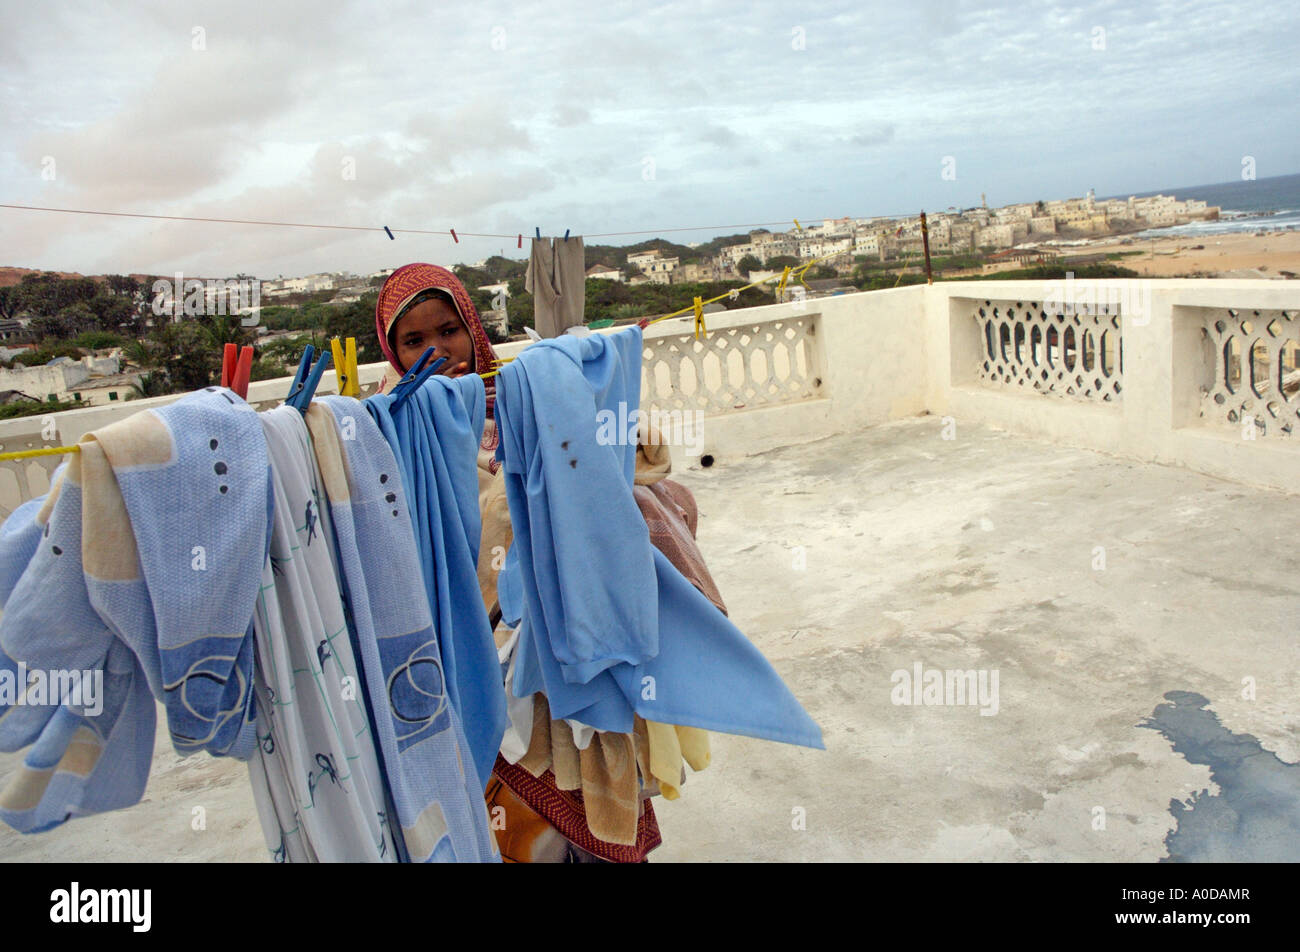 A Somali woman drying clothes in Mogadishu, Somalia Stock Photo